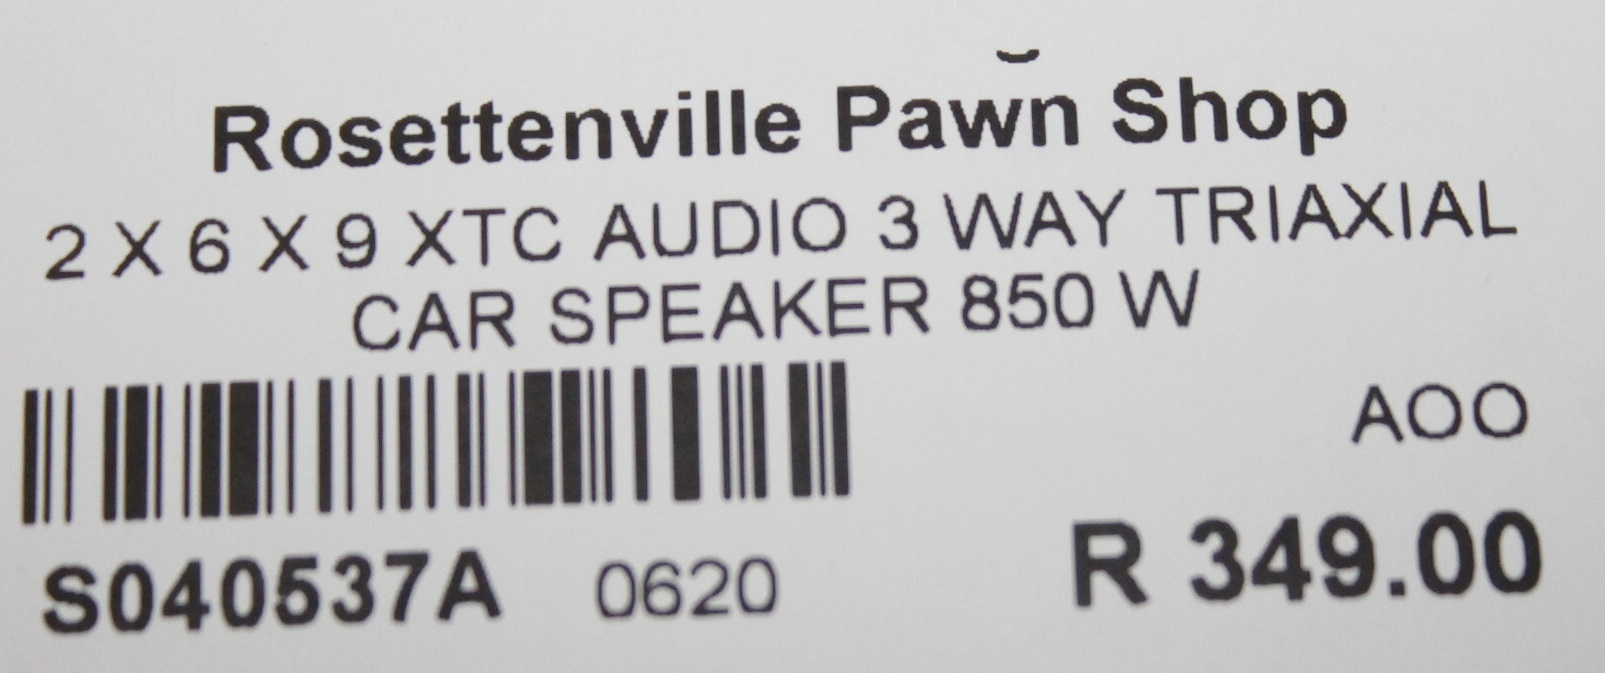 2X 6X9 xtc 850w speakers S040537A #Rosettenvillepawnshop